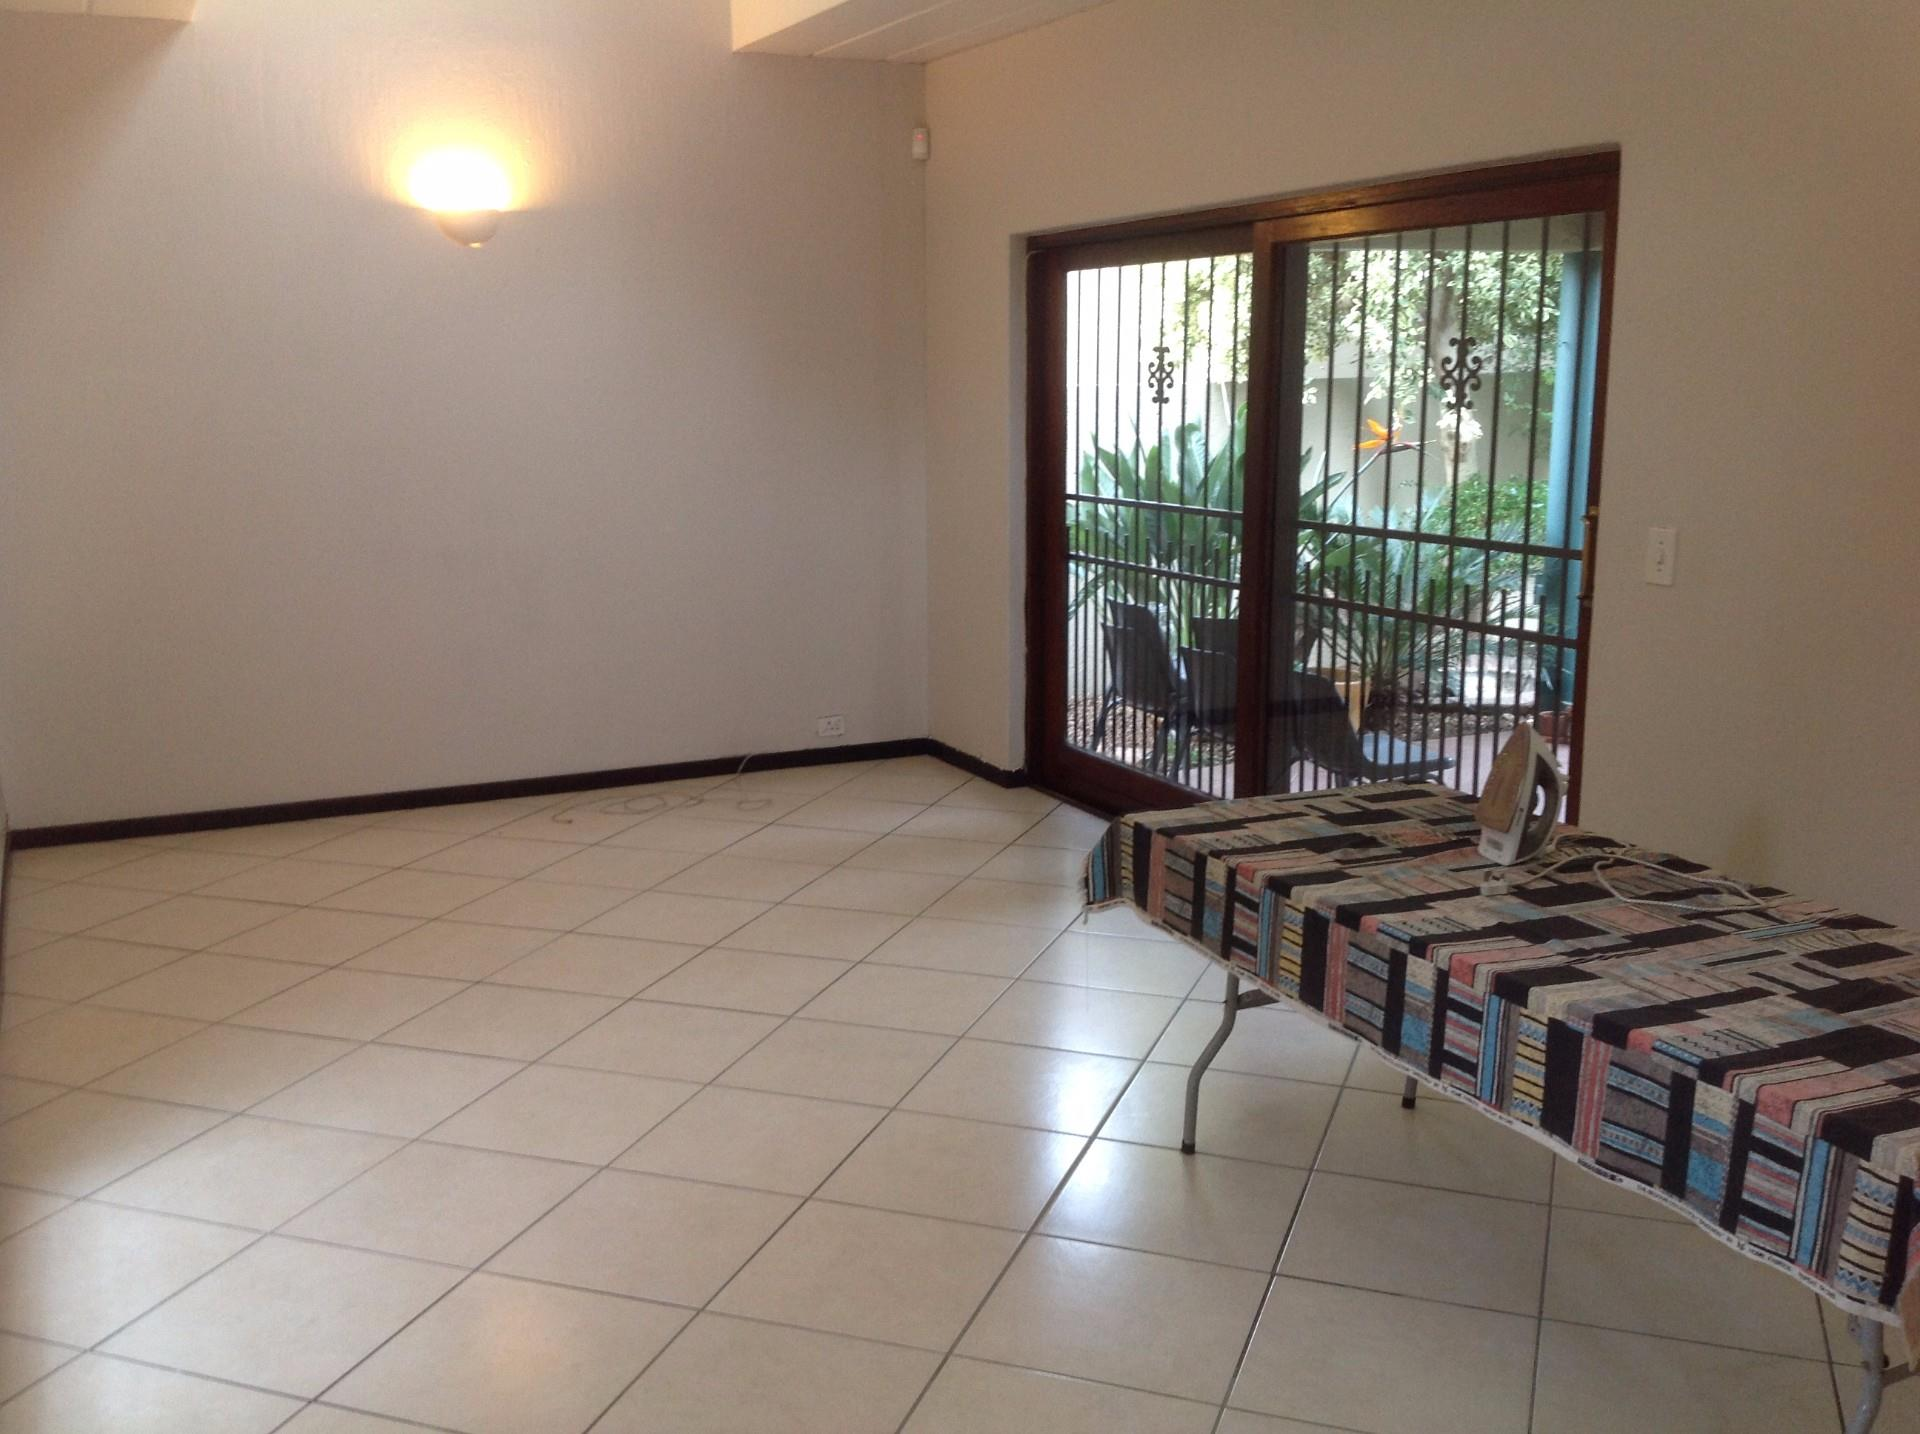 3 Bedroom Apartment / Flat To Rent in Ferndale